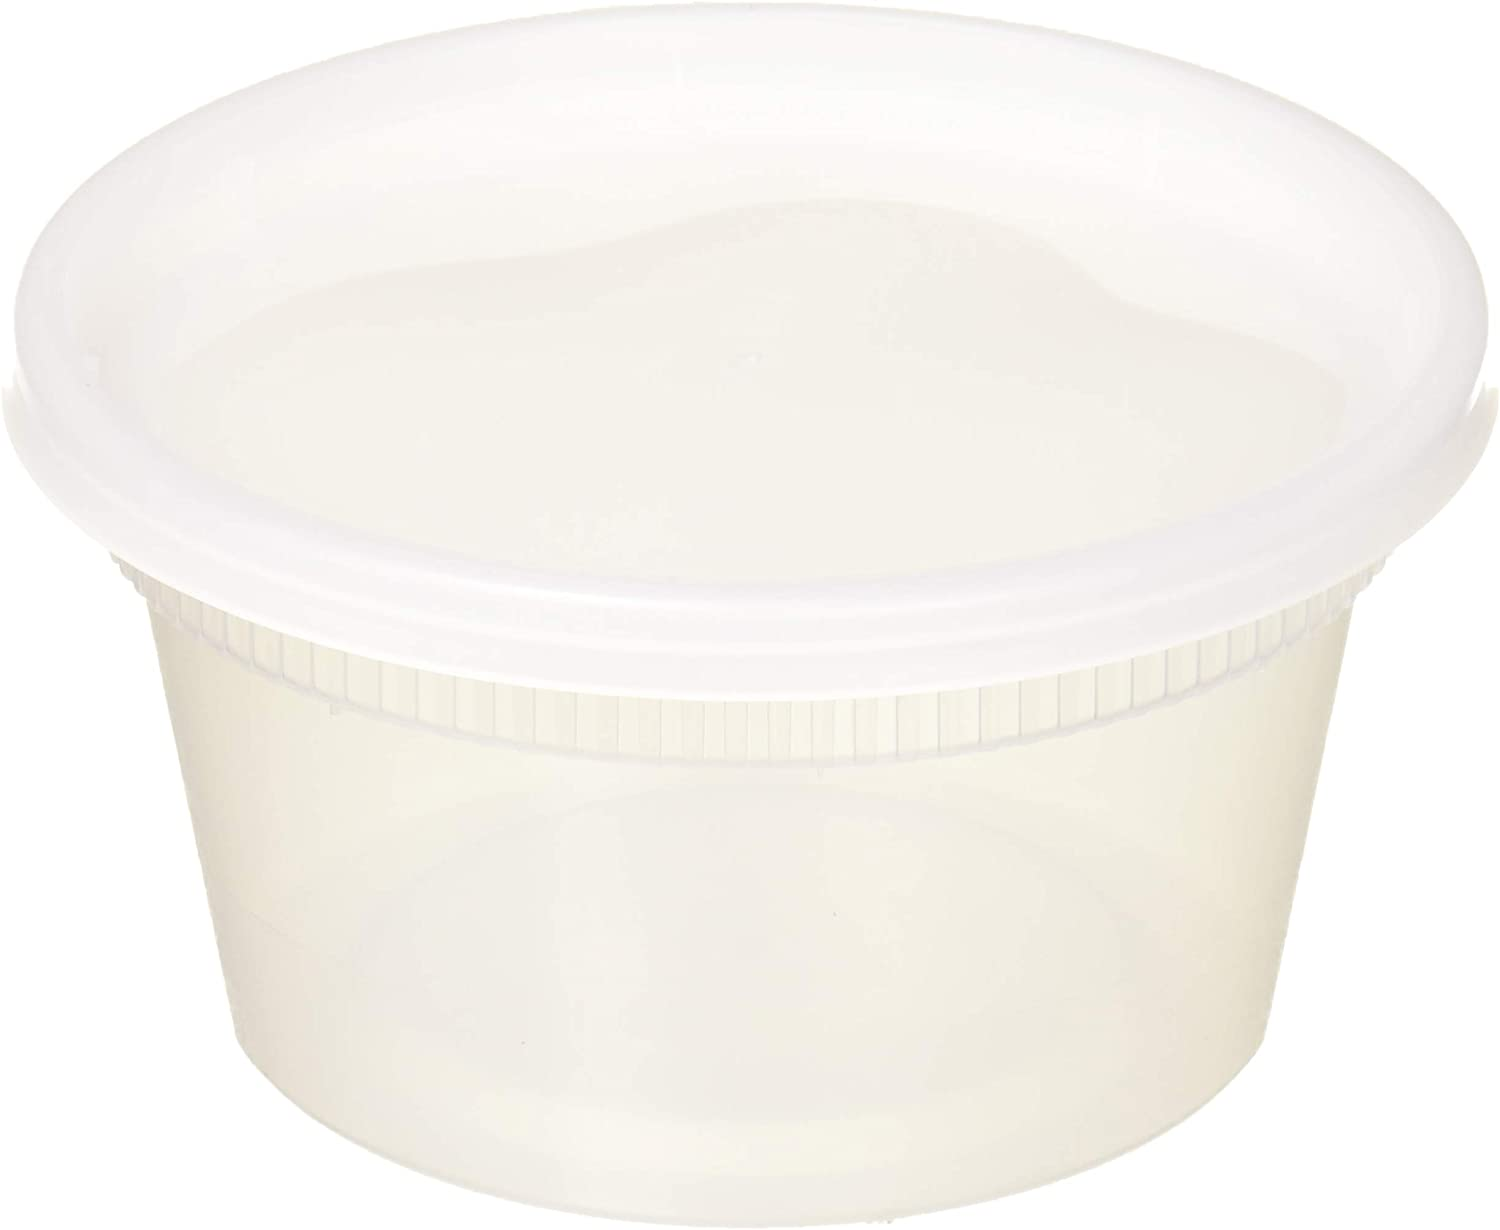 Newspring Delitainer Deli Food Containers with Lids